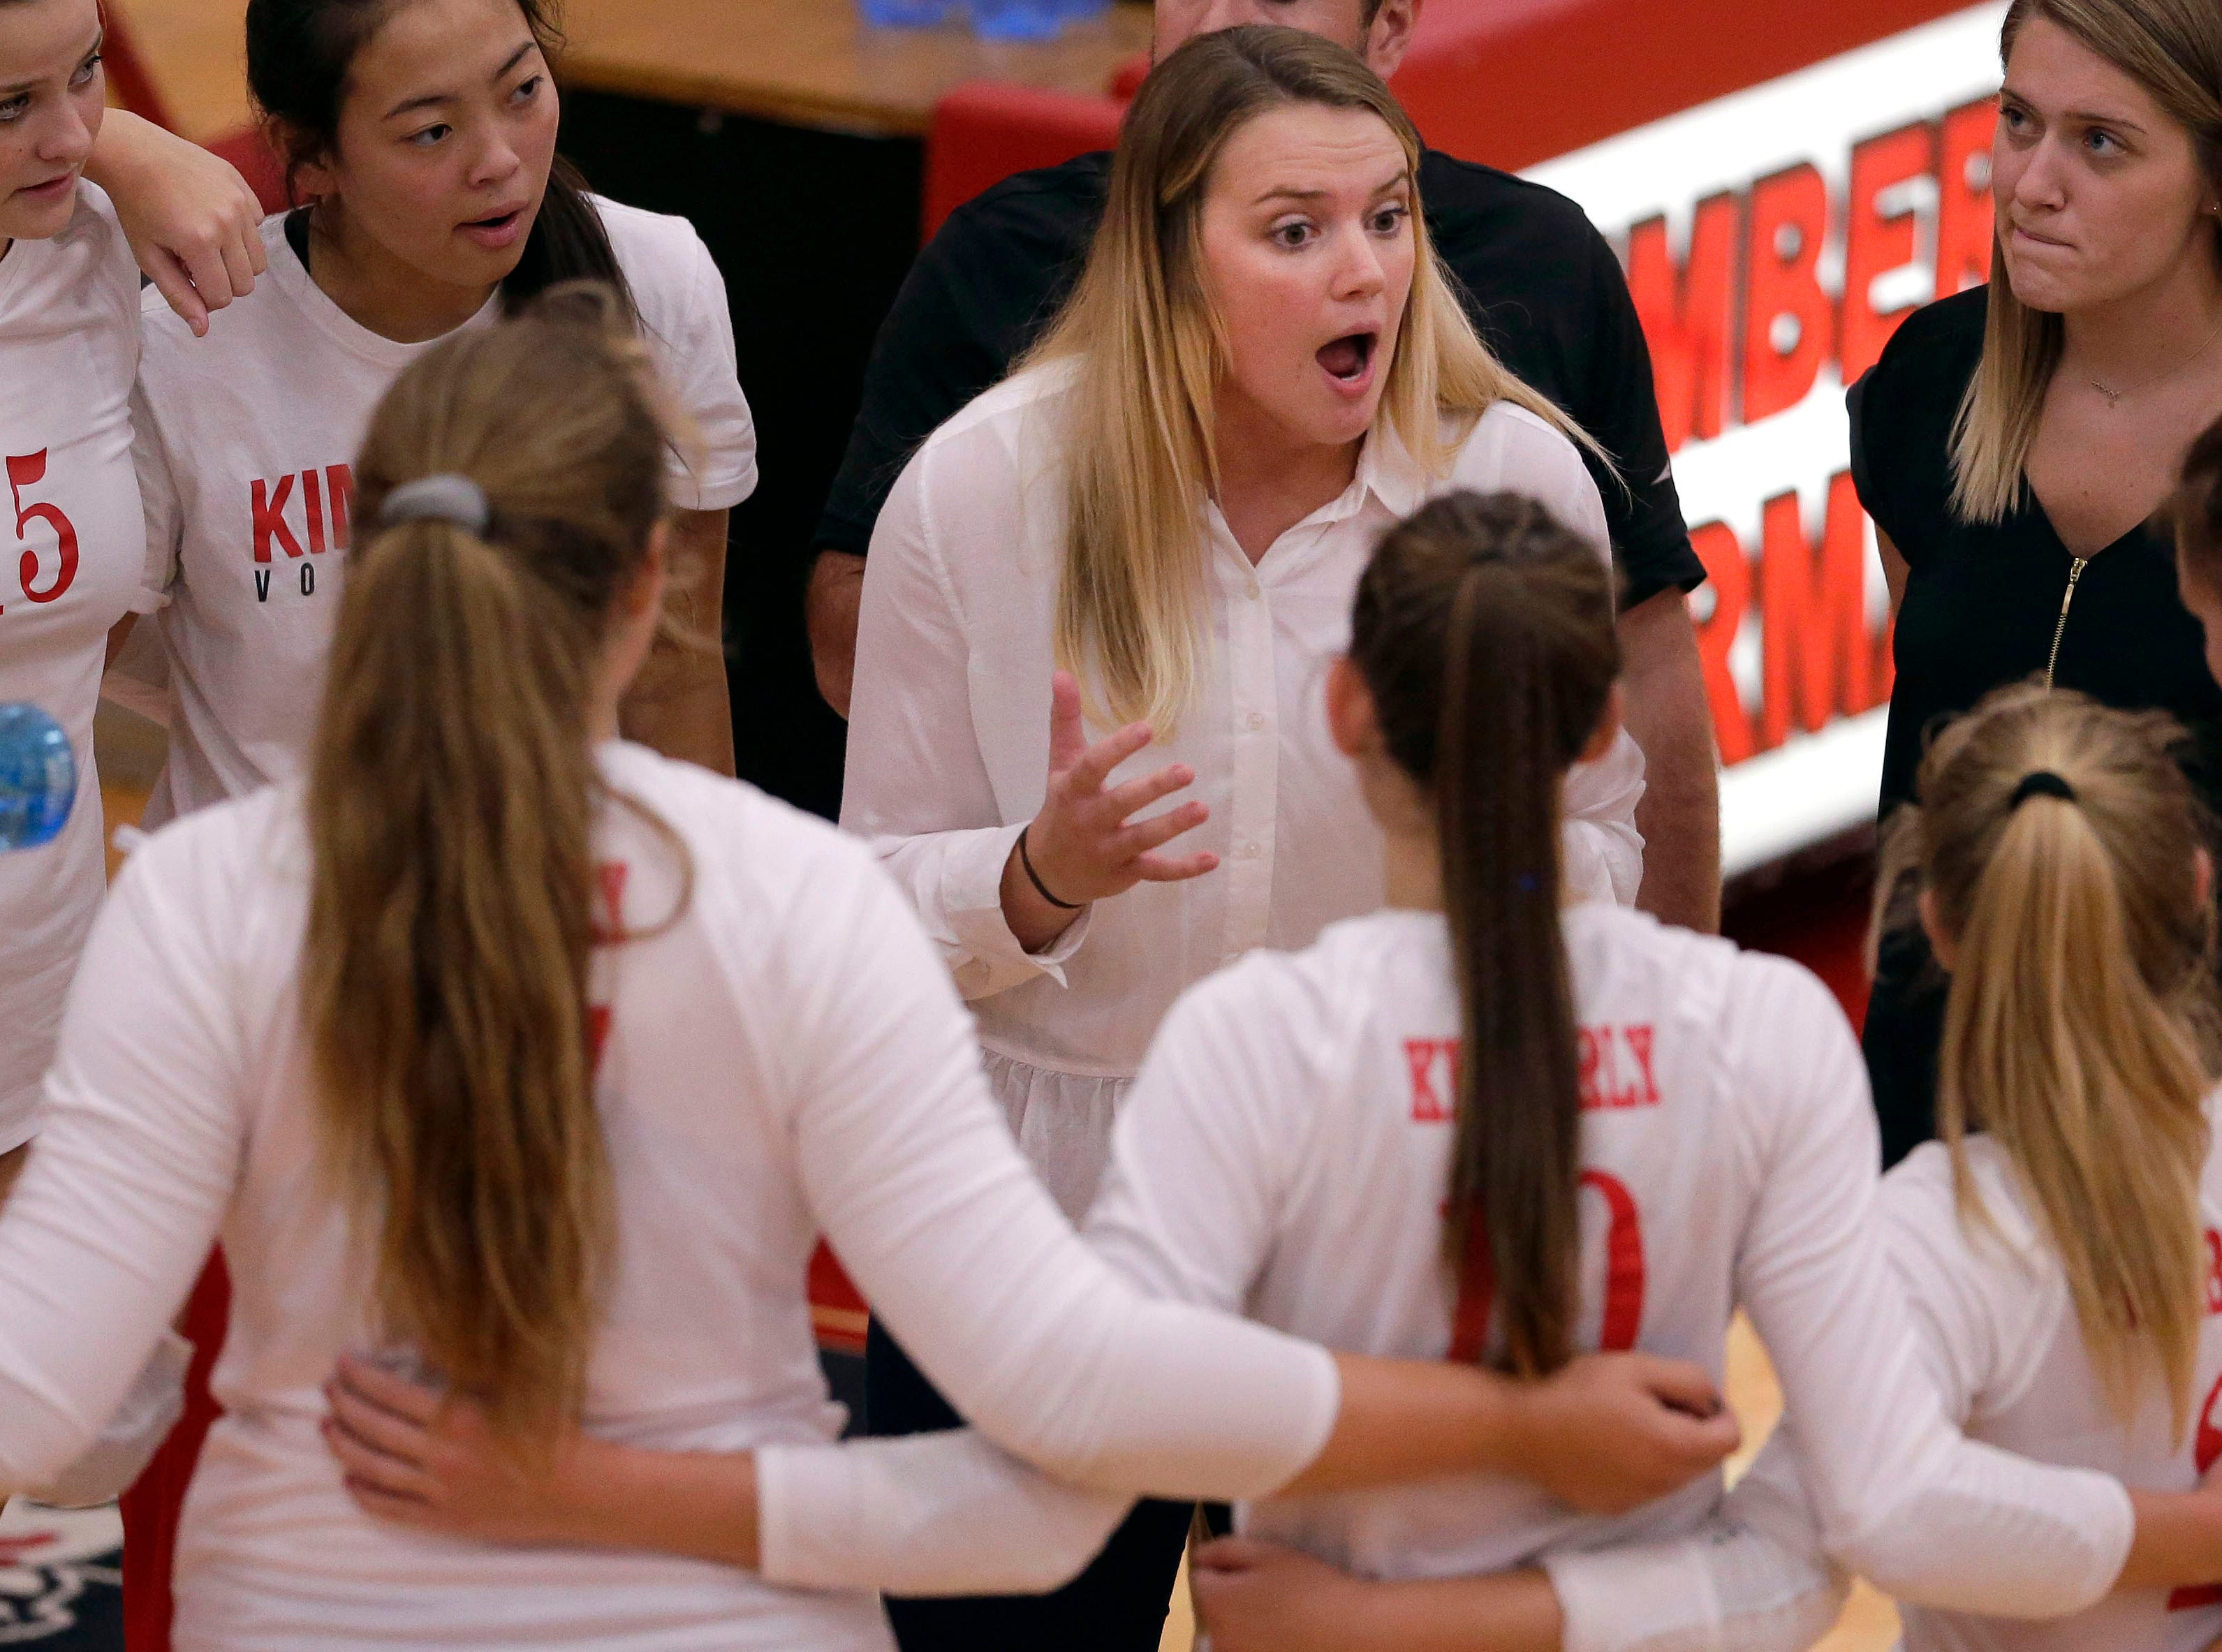 Kimberly players listen to their coach as they take on Neenah in FVA girls volleyball Tuesday, September 11, 2018, at Kimberly High School in Kimberly, Wis.Ron Page/USA TODAY NETWORK-Wisconsin